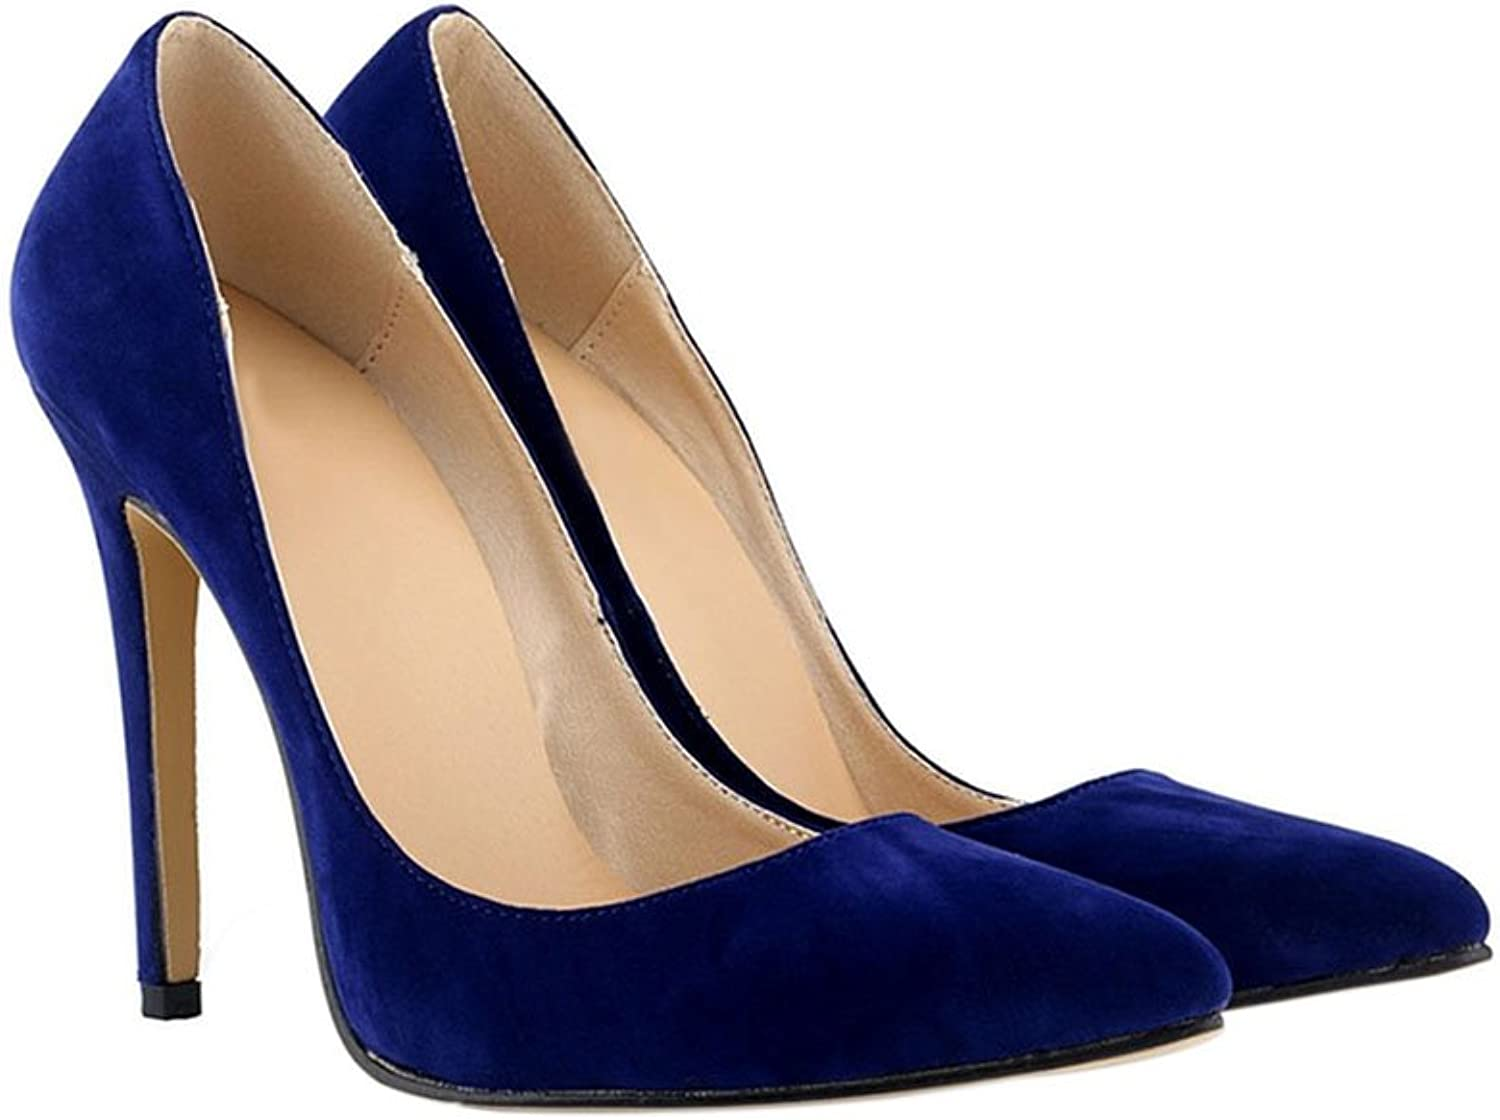 Meijunter Ladies 11CM High Heel Pointed Stiletto Suede Leather Classic Pumps shoes bluee